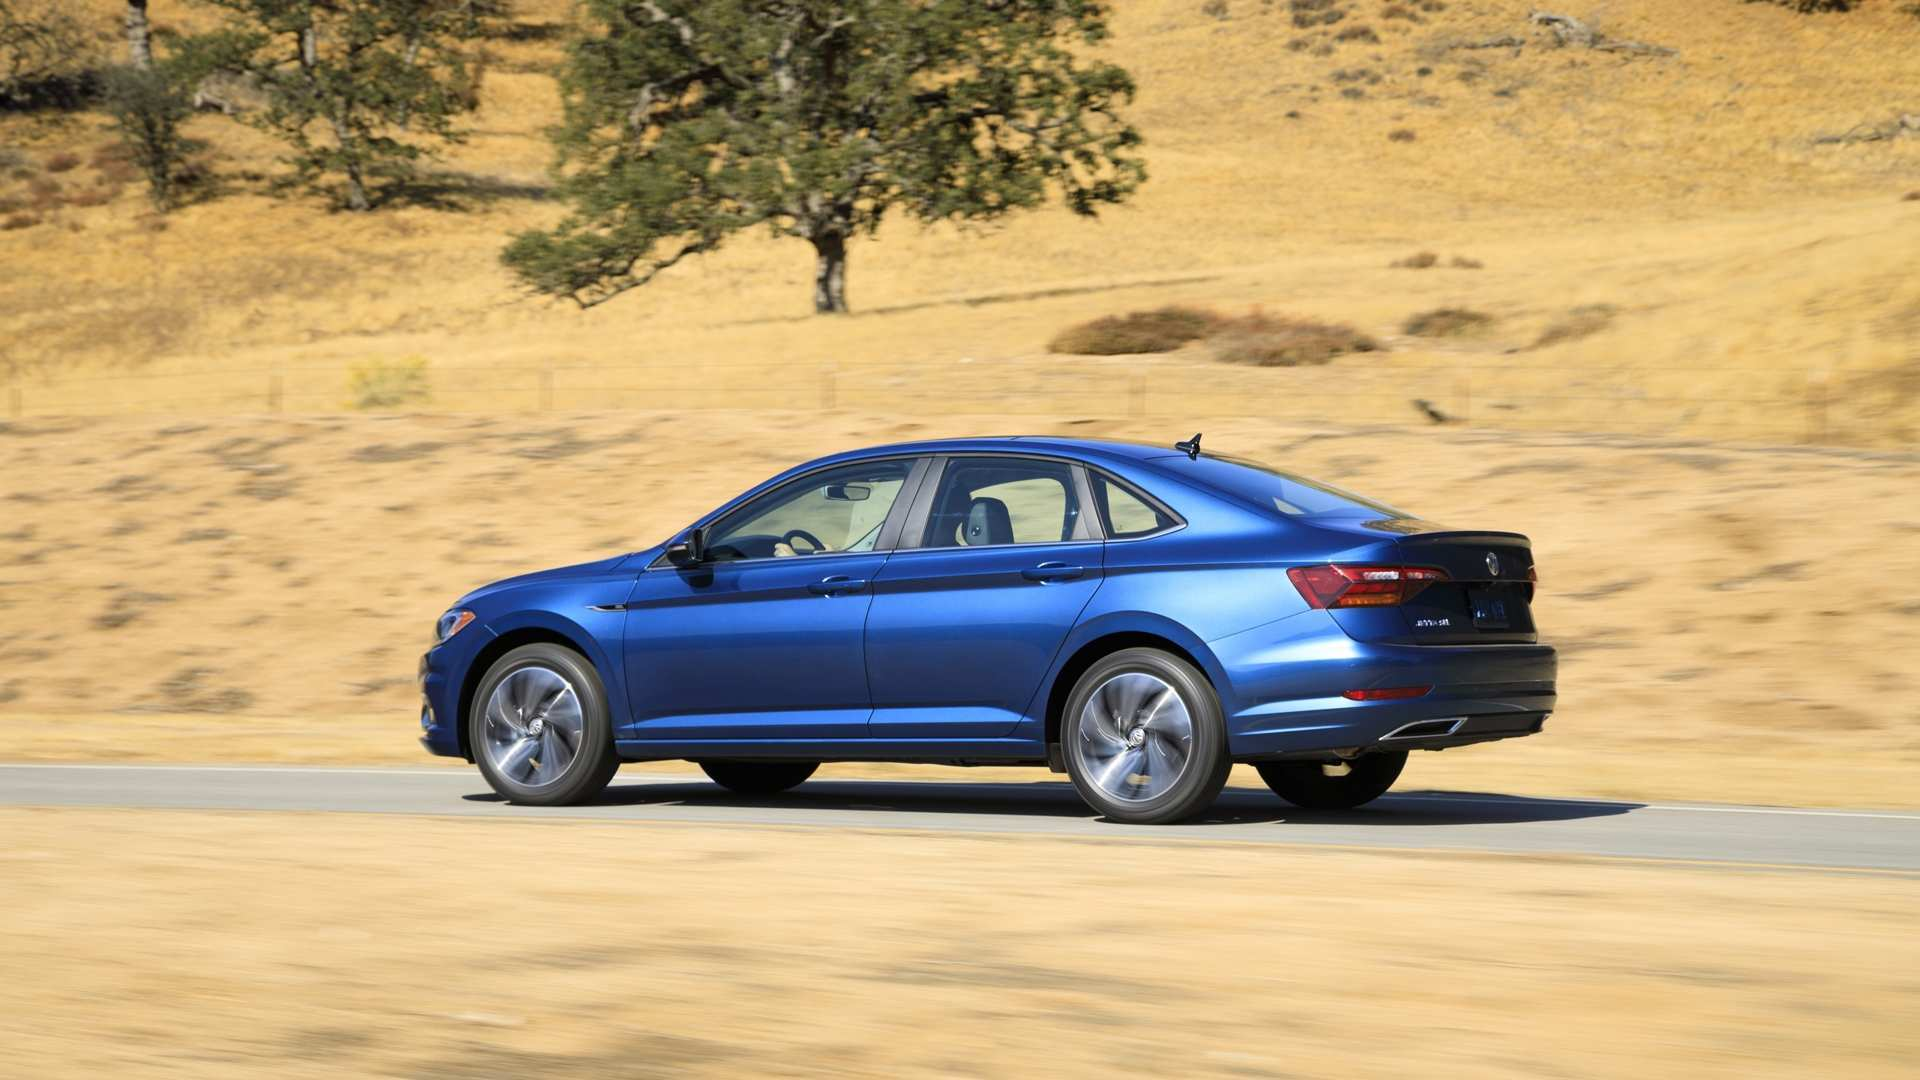 89 The Best 2020 VW Jetta Tdi Gli Concept And Review